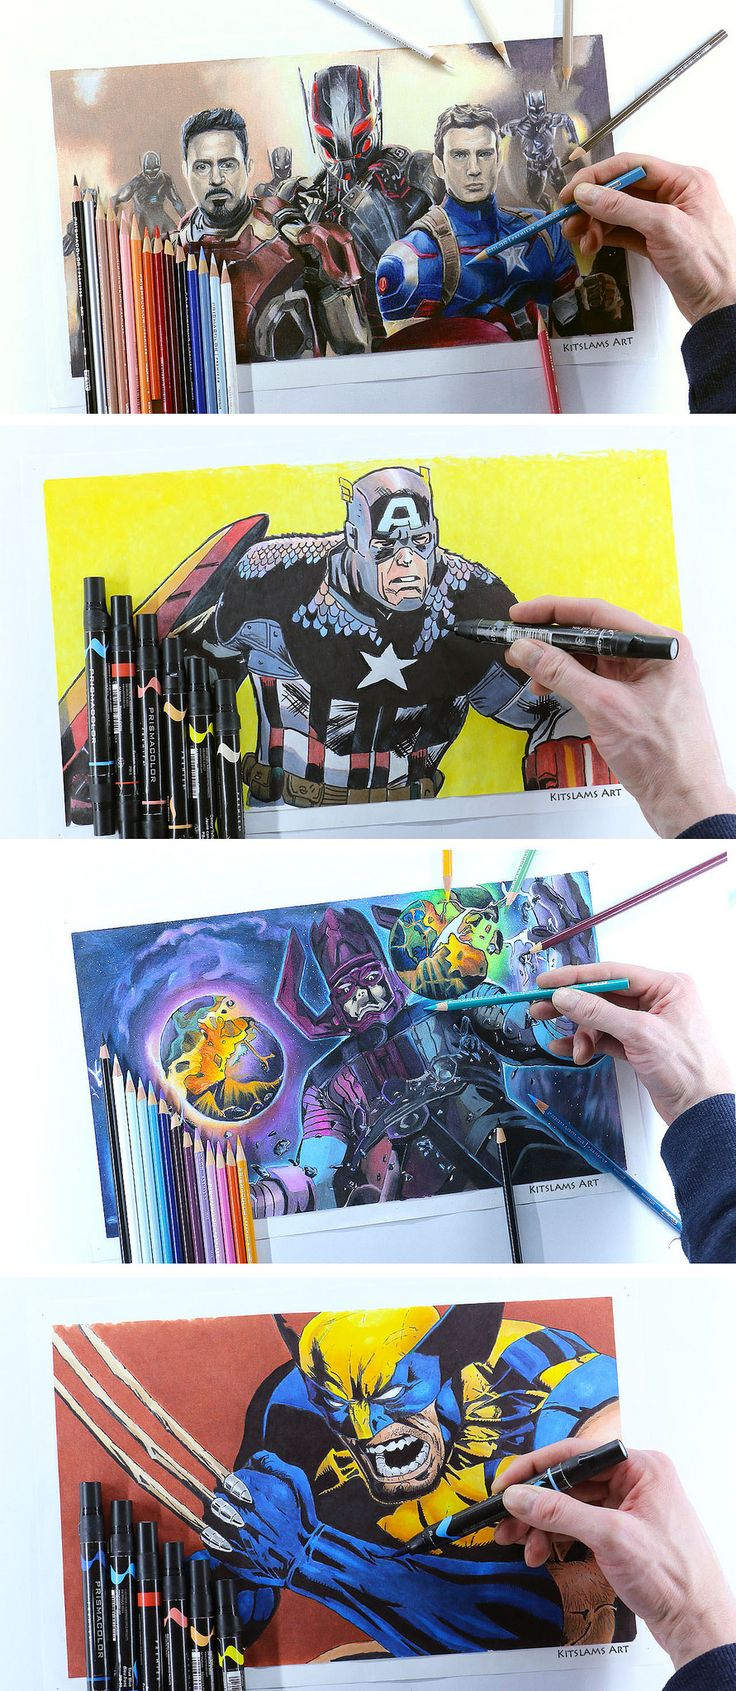 https://flic.kr/p/V9Wux7 | Collection of Marvel Super Hero Drawings @kitslam | YouTube Videos: https://www.youtube.com/watch?v=uQhzGbhw_tE&list=PL3gRhsFjneo1KVaBN7O5jDyYV7iGtKGCL